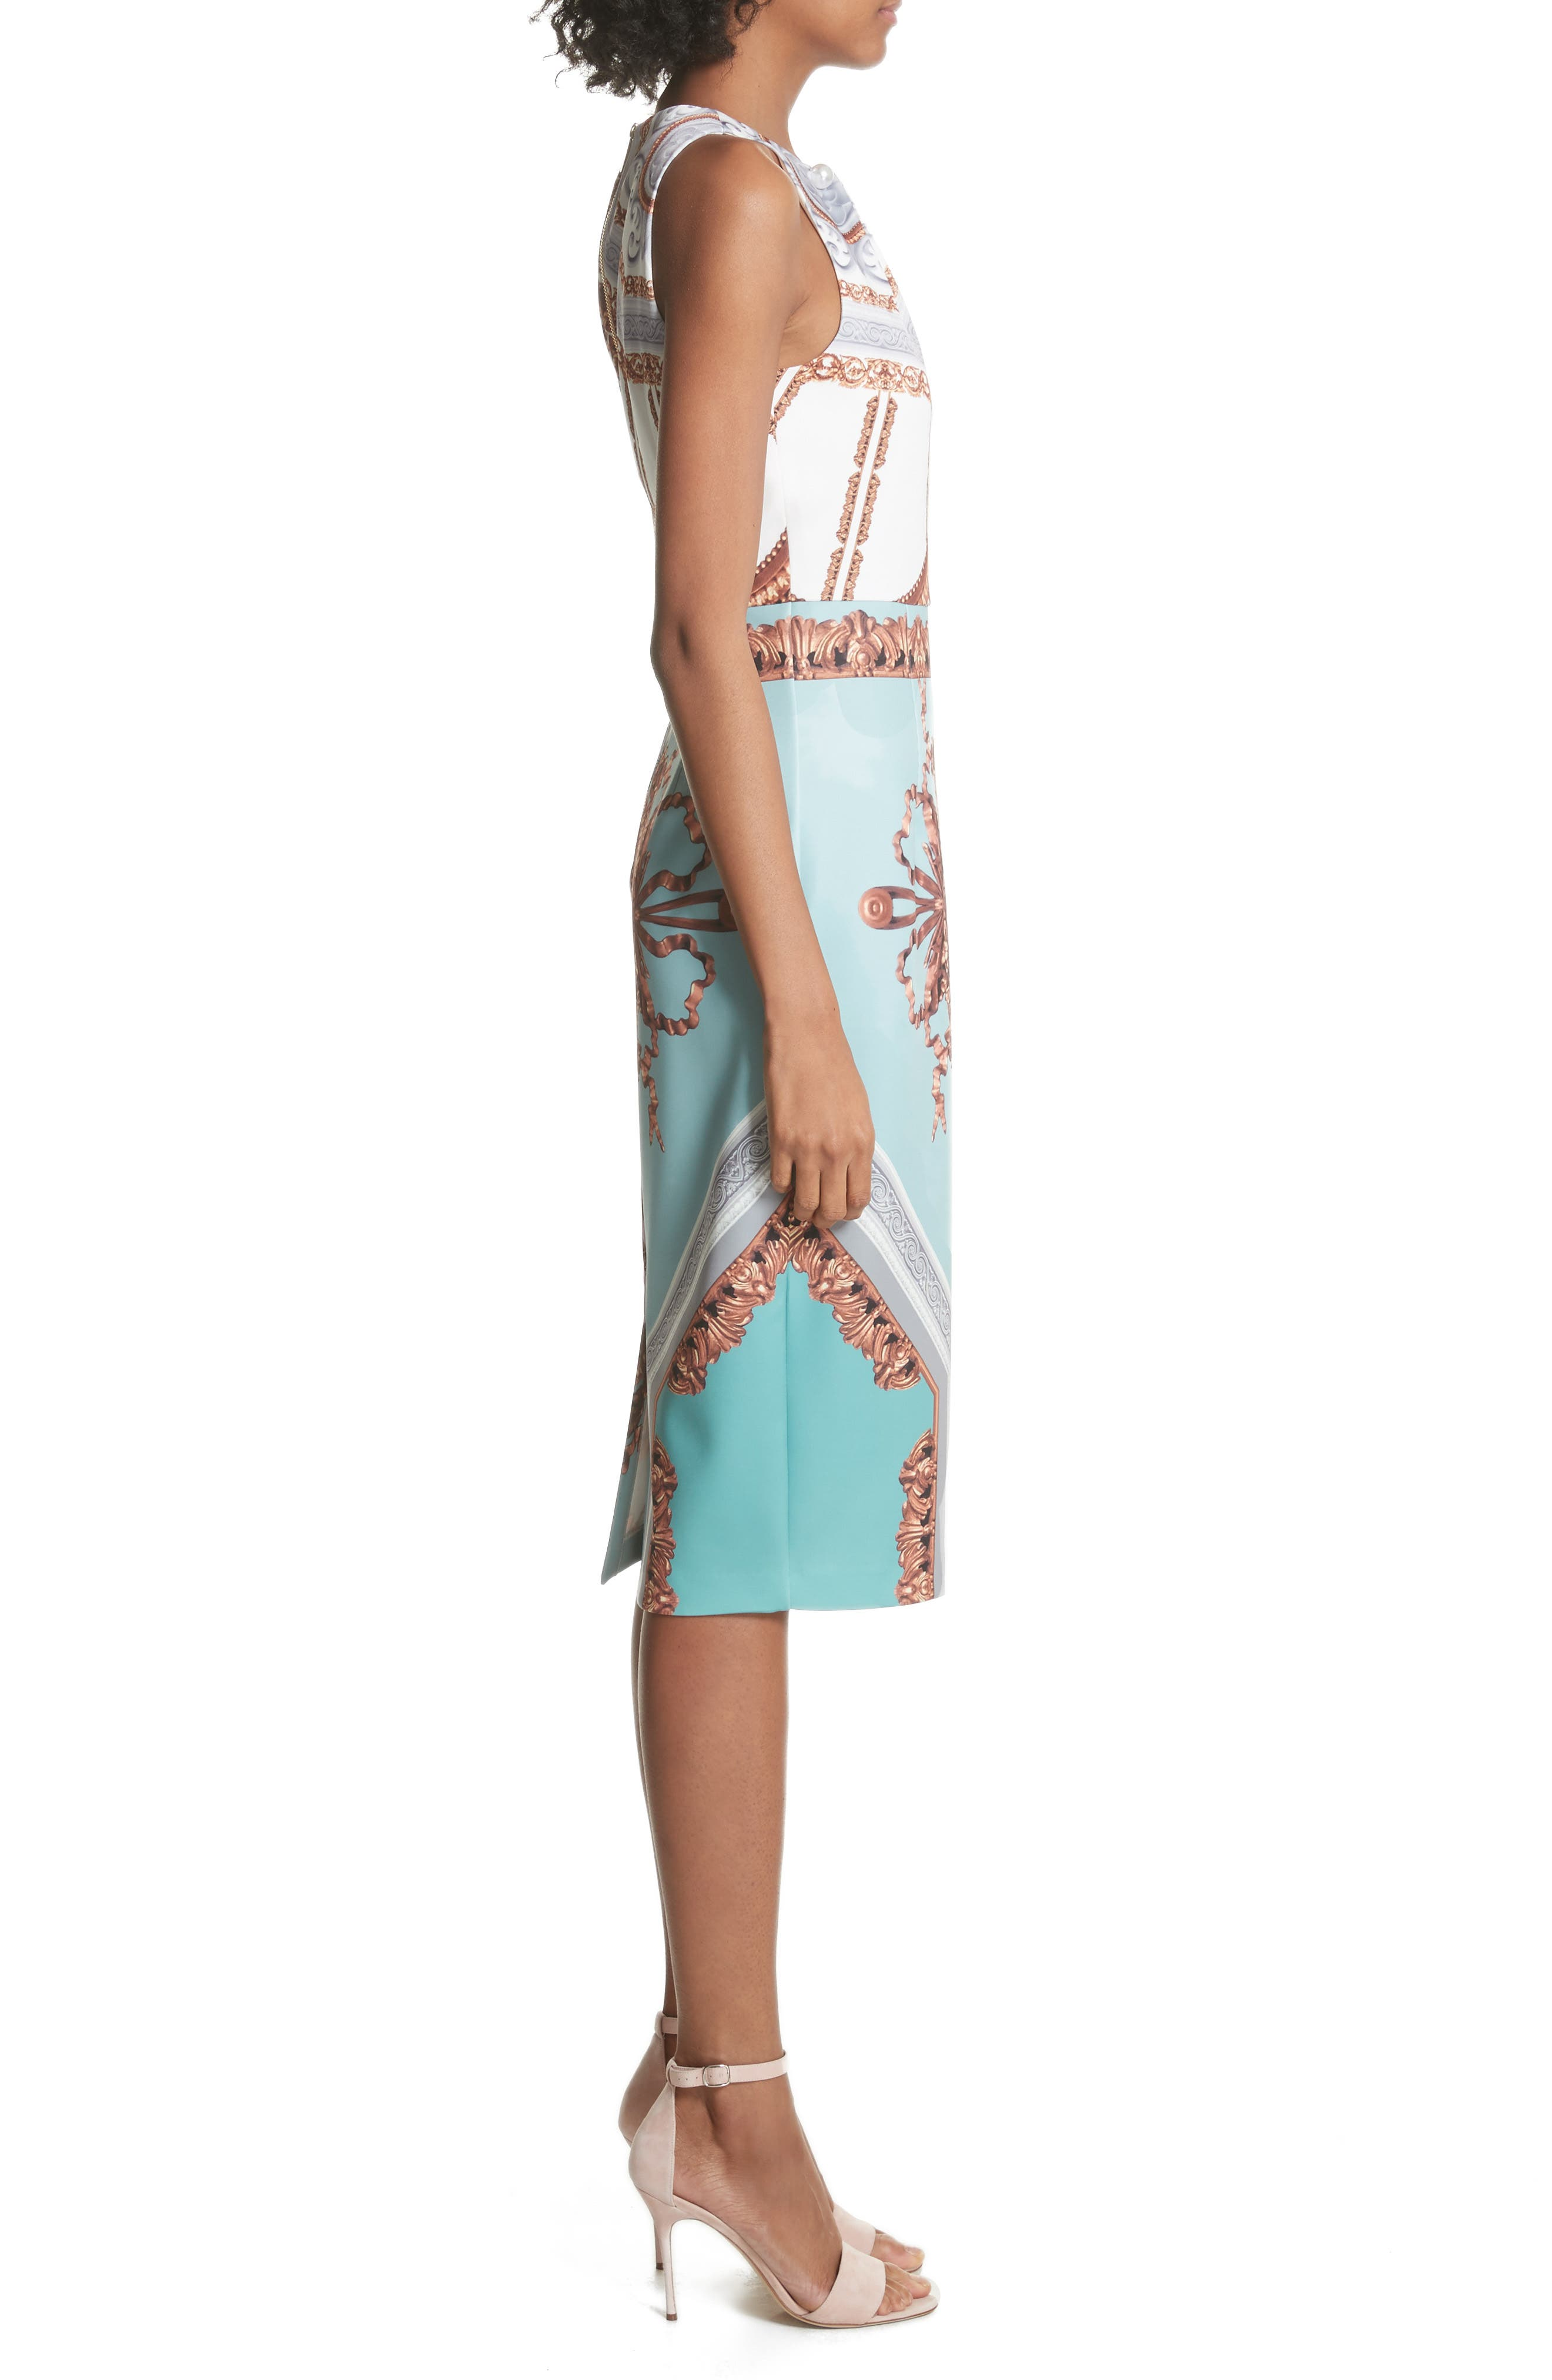 Orlla Embellished Midi Dress,                             Alternate thumbnail 3, color,                             Teal